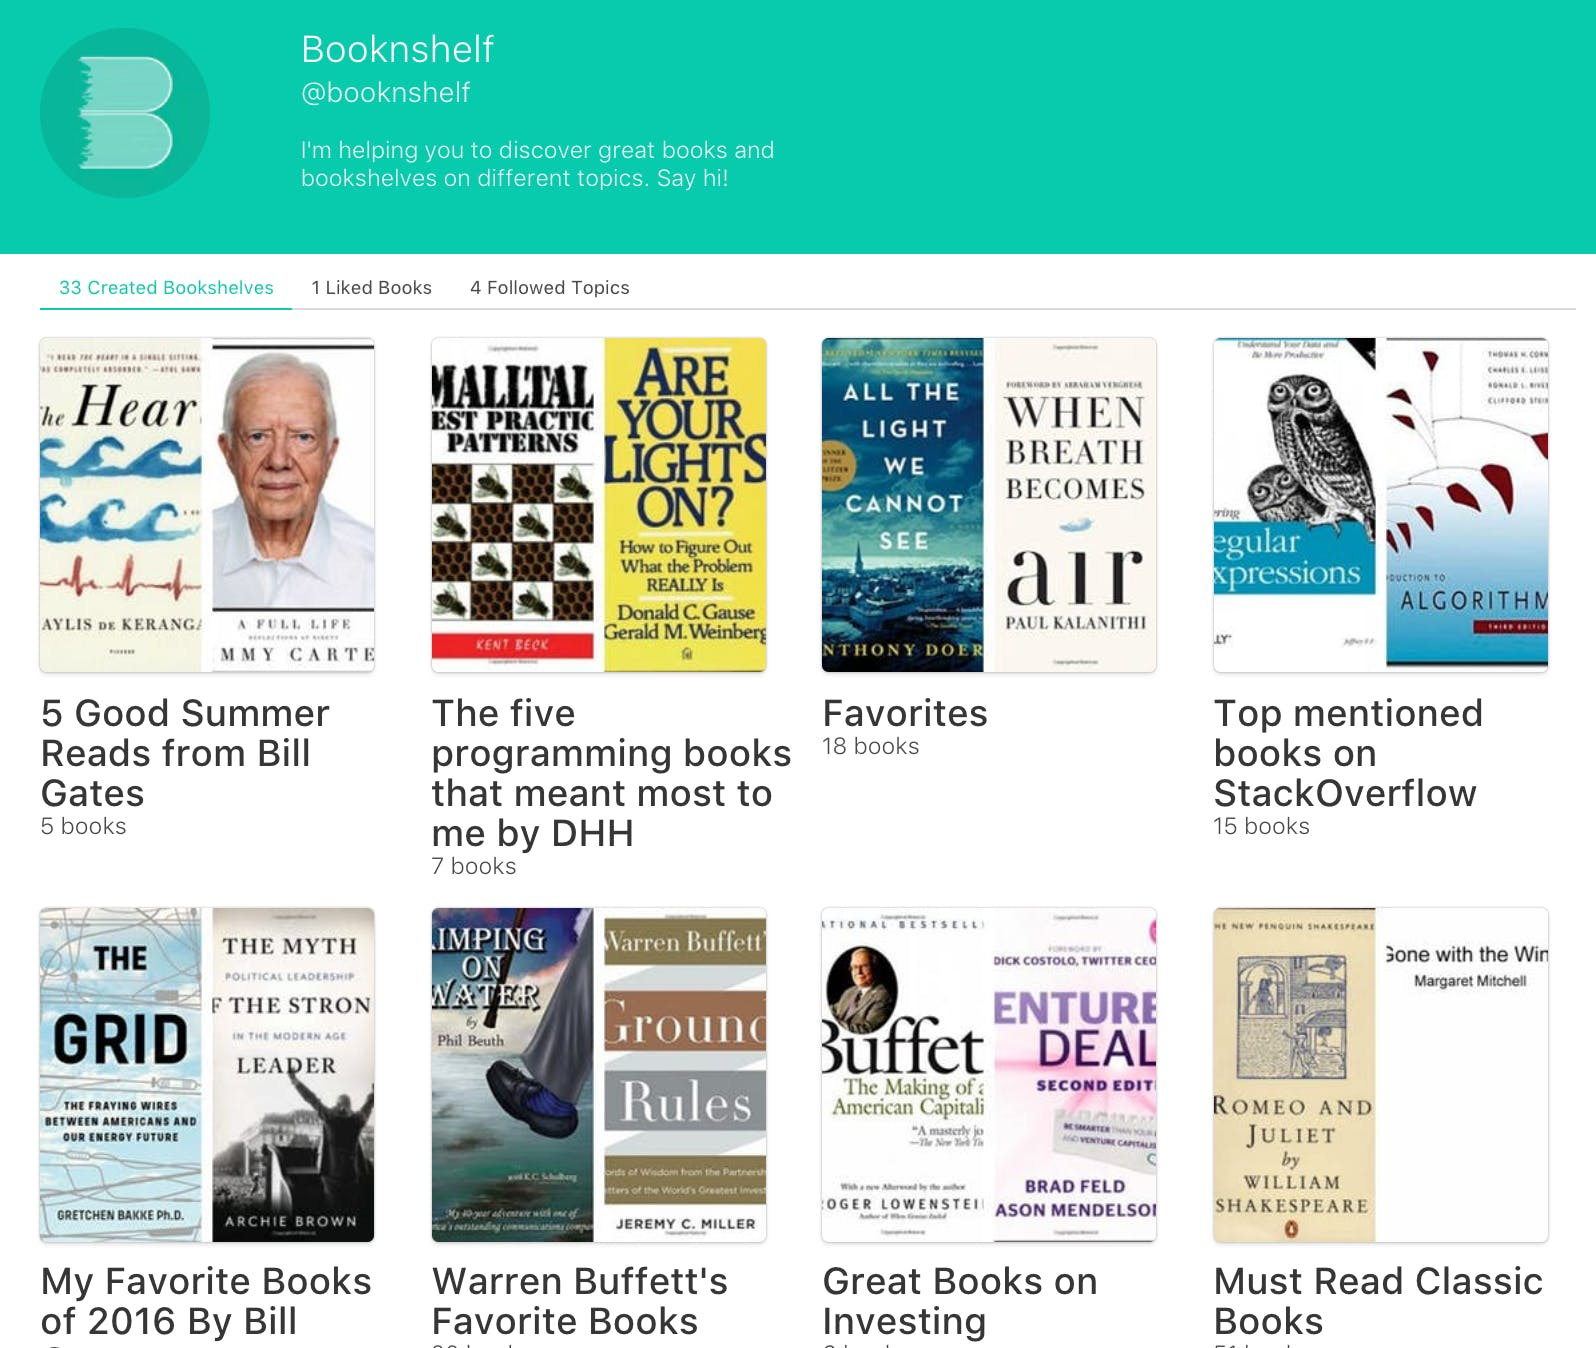 Booknshelf Profile Homepage Showcase